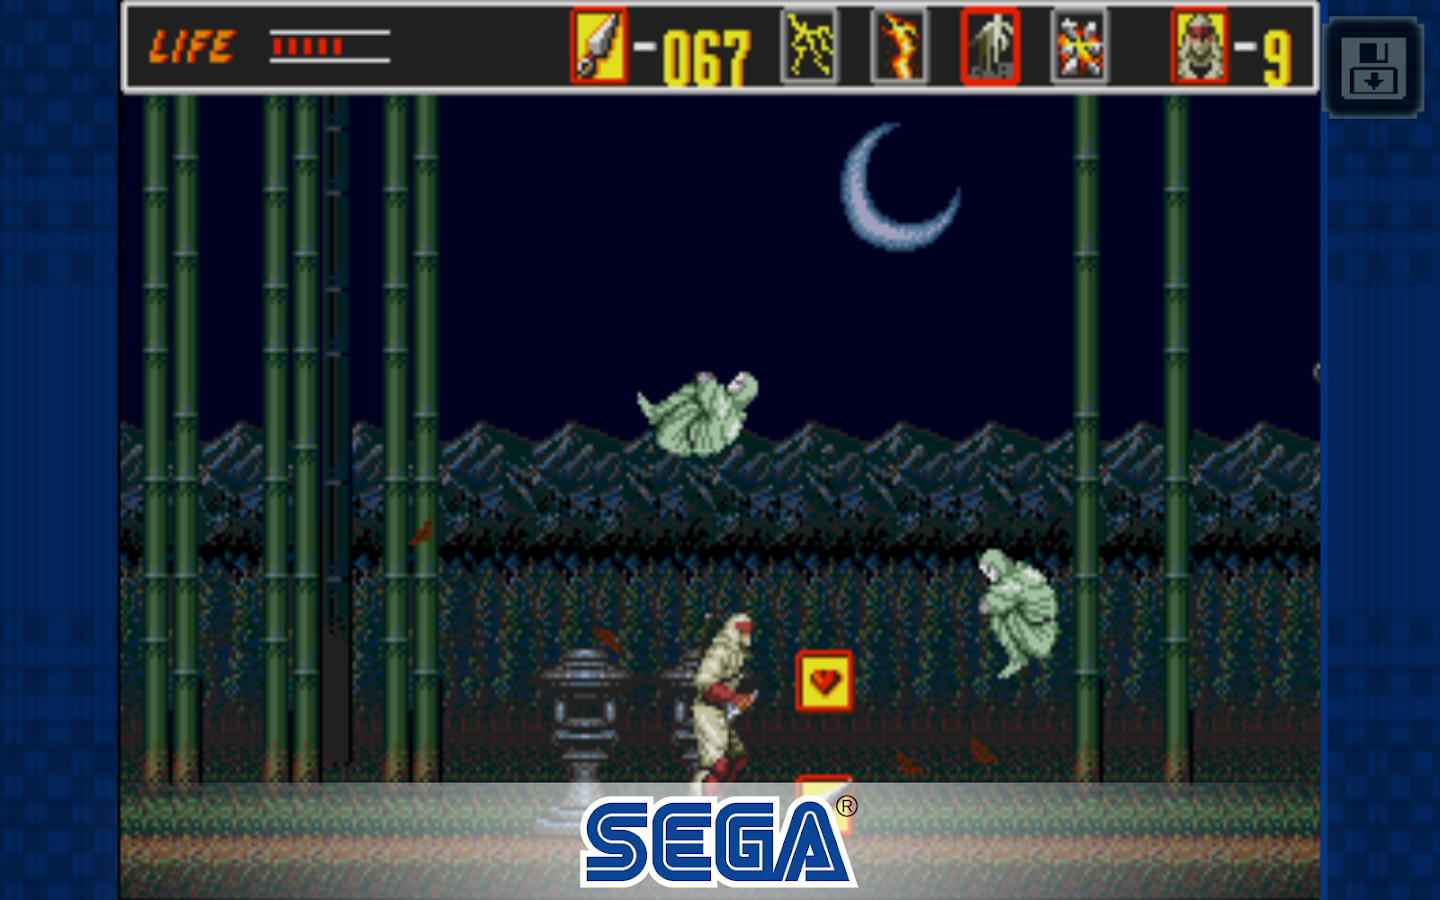 The Revenge of Shinobi Classic Screenshot 5